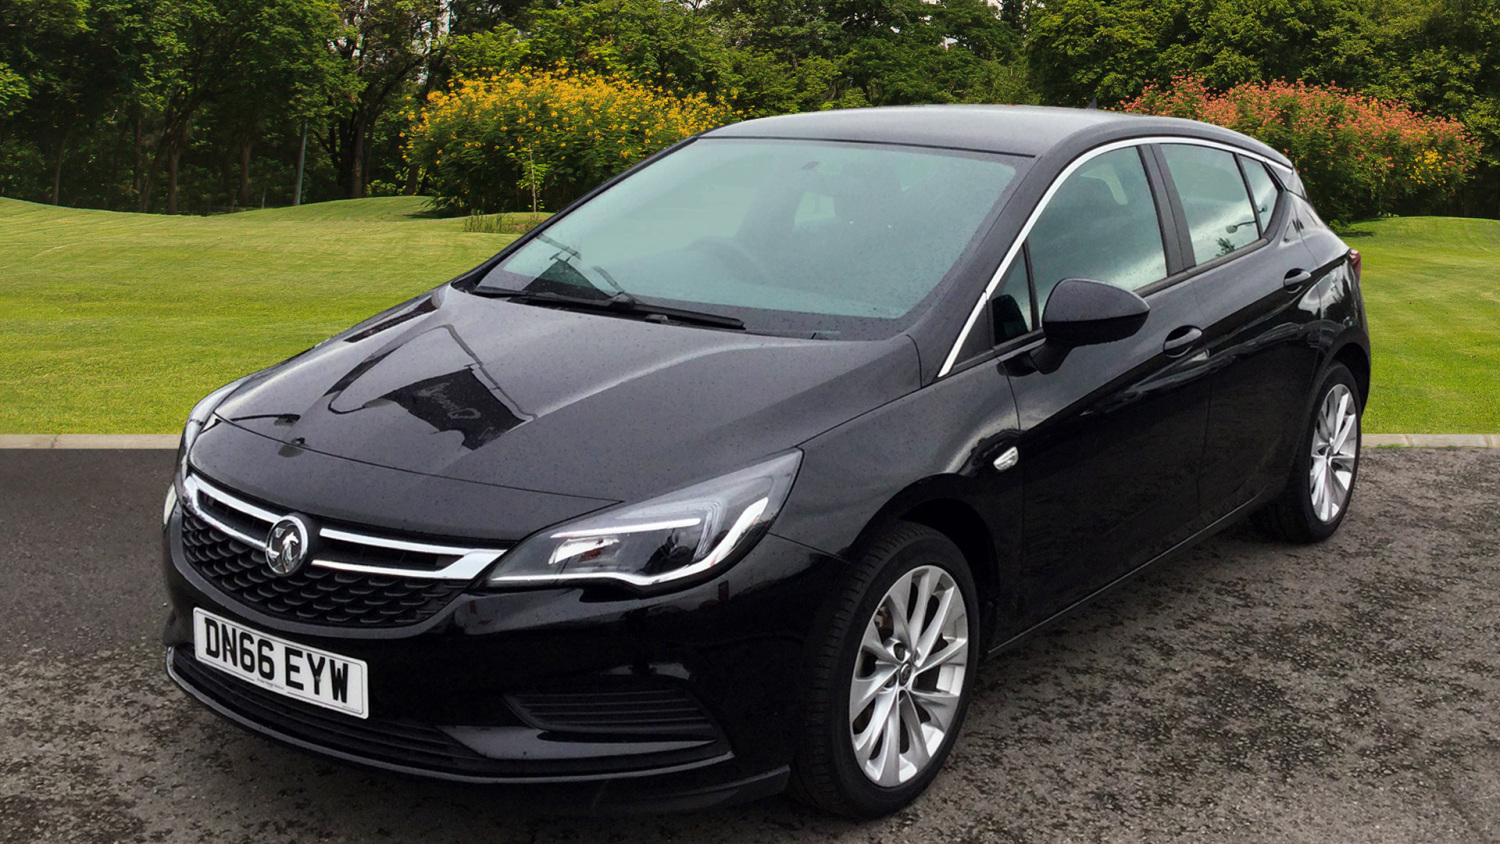 buy online vauxhall astra 1 6 cdti 16v tech line 5dr diesel hatchback for sale bristol street. Black Bedroom Furniture Sets. Home Design Ideas